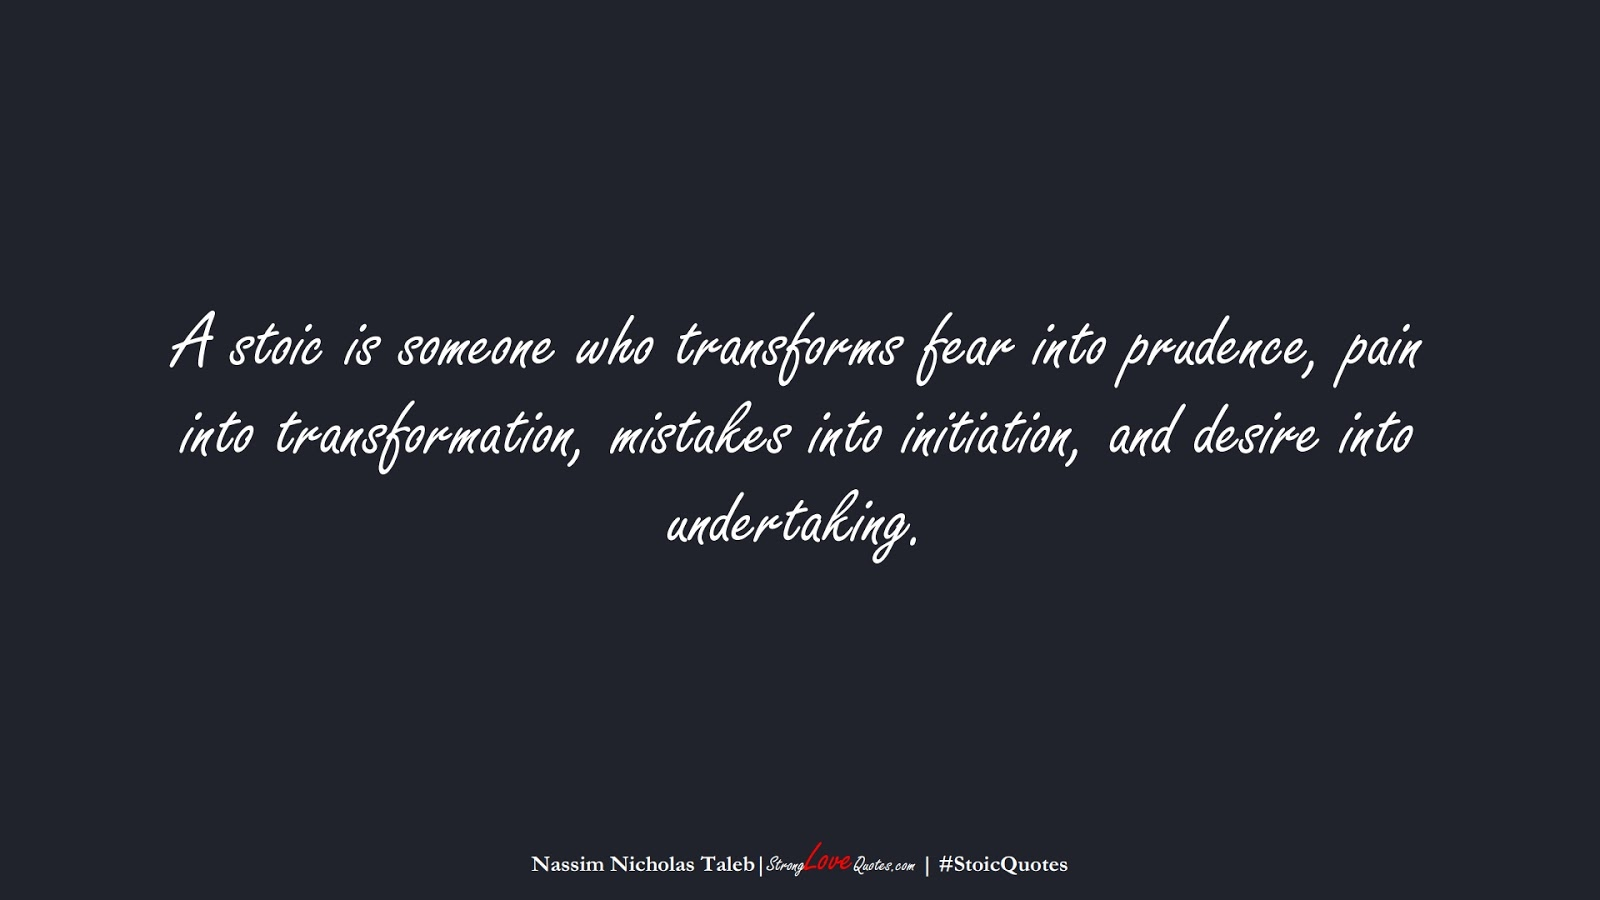 A stoic is someone who transforms fear into prudence, pain into transformation, mistakes into initiation, and desire into undertaking. (Nassim Nicholas Taleb);  #StoicQuotes